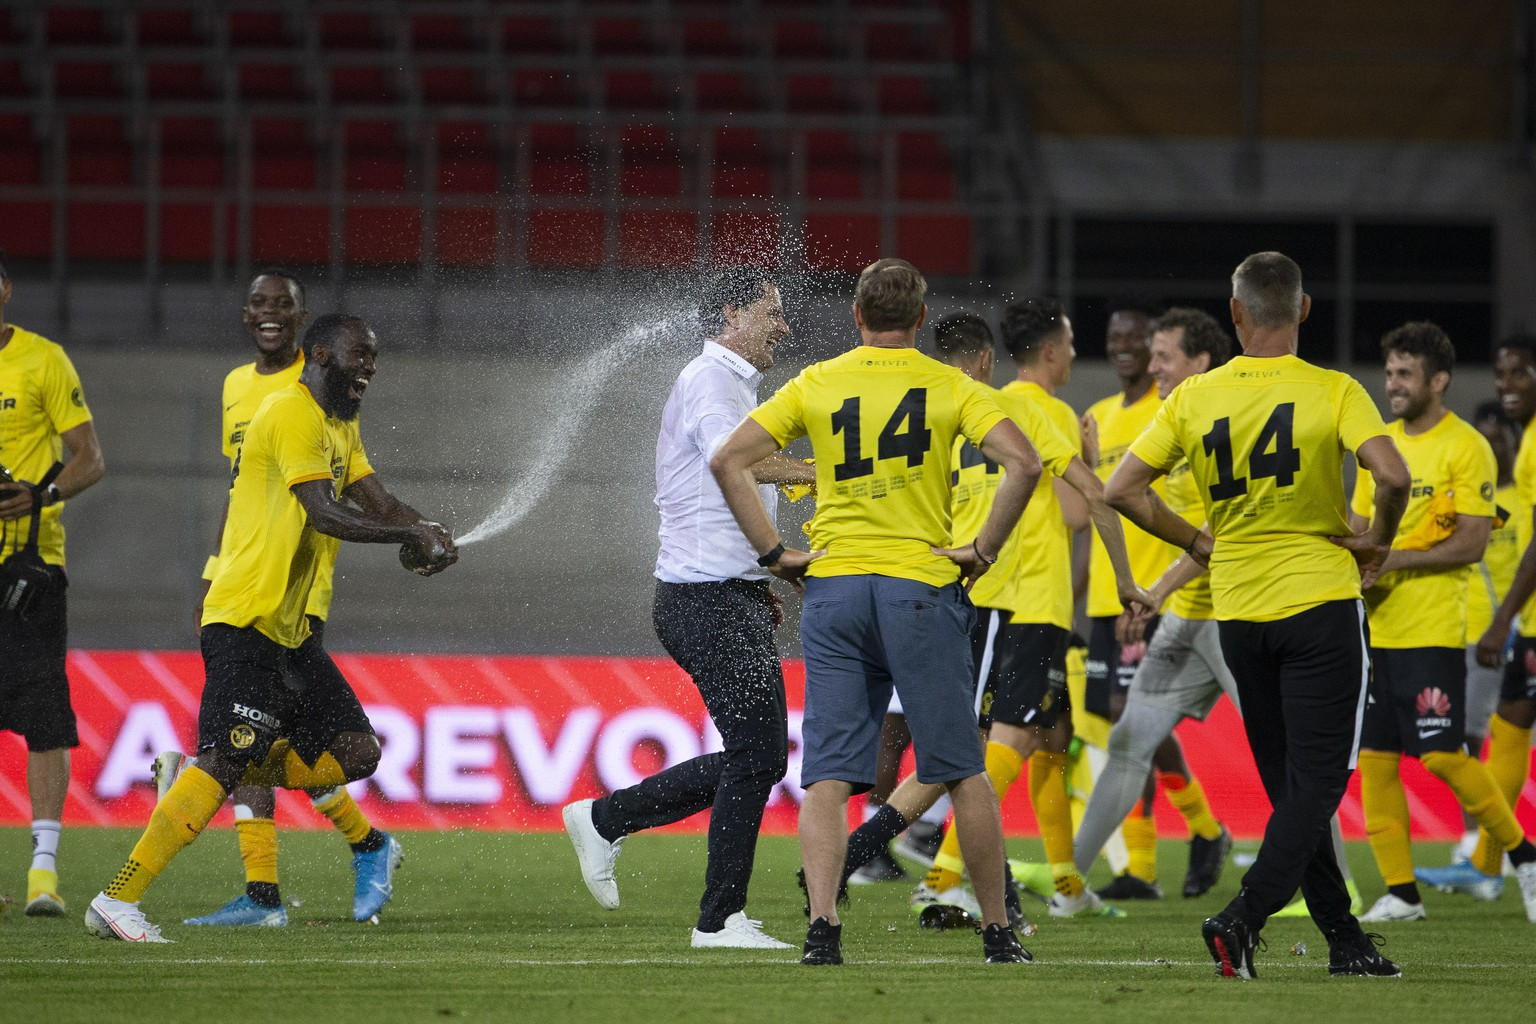 Young Boys' players celebrate title as Swiss champion with of sparkling wine, after the Super League soccer match between FC Sion and BSC Young Boys, at the Stade de Tourbillon stadium, in Sion, Switzerland, Friday, July 31, 2020. All Super League soccer matches of Swiss Championship are played to behind the semi closed doors (only 1000 persons can be present in the stadium) due to preventive measure against a second wave of the coronavirus COVID-19. (KEYSTONE/Salvatore Di Nolfi)